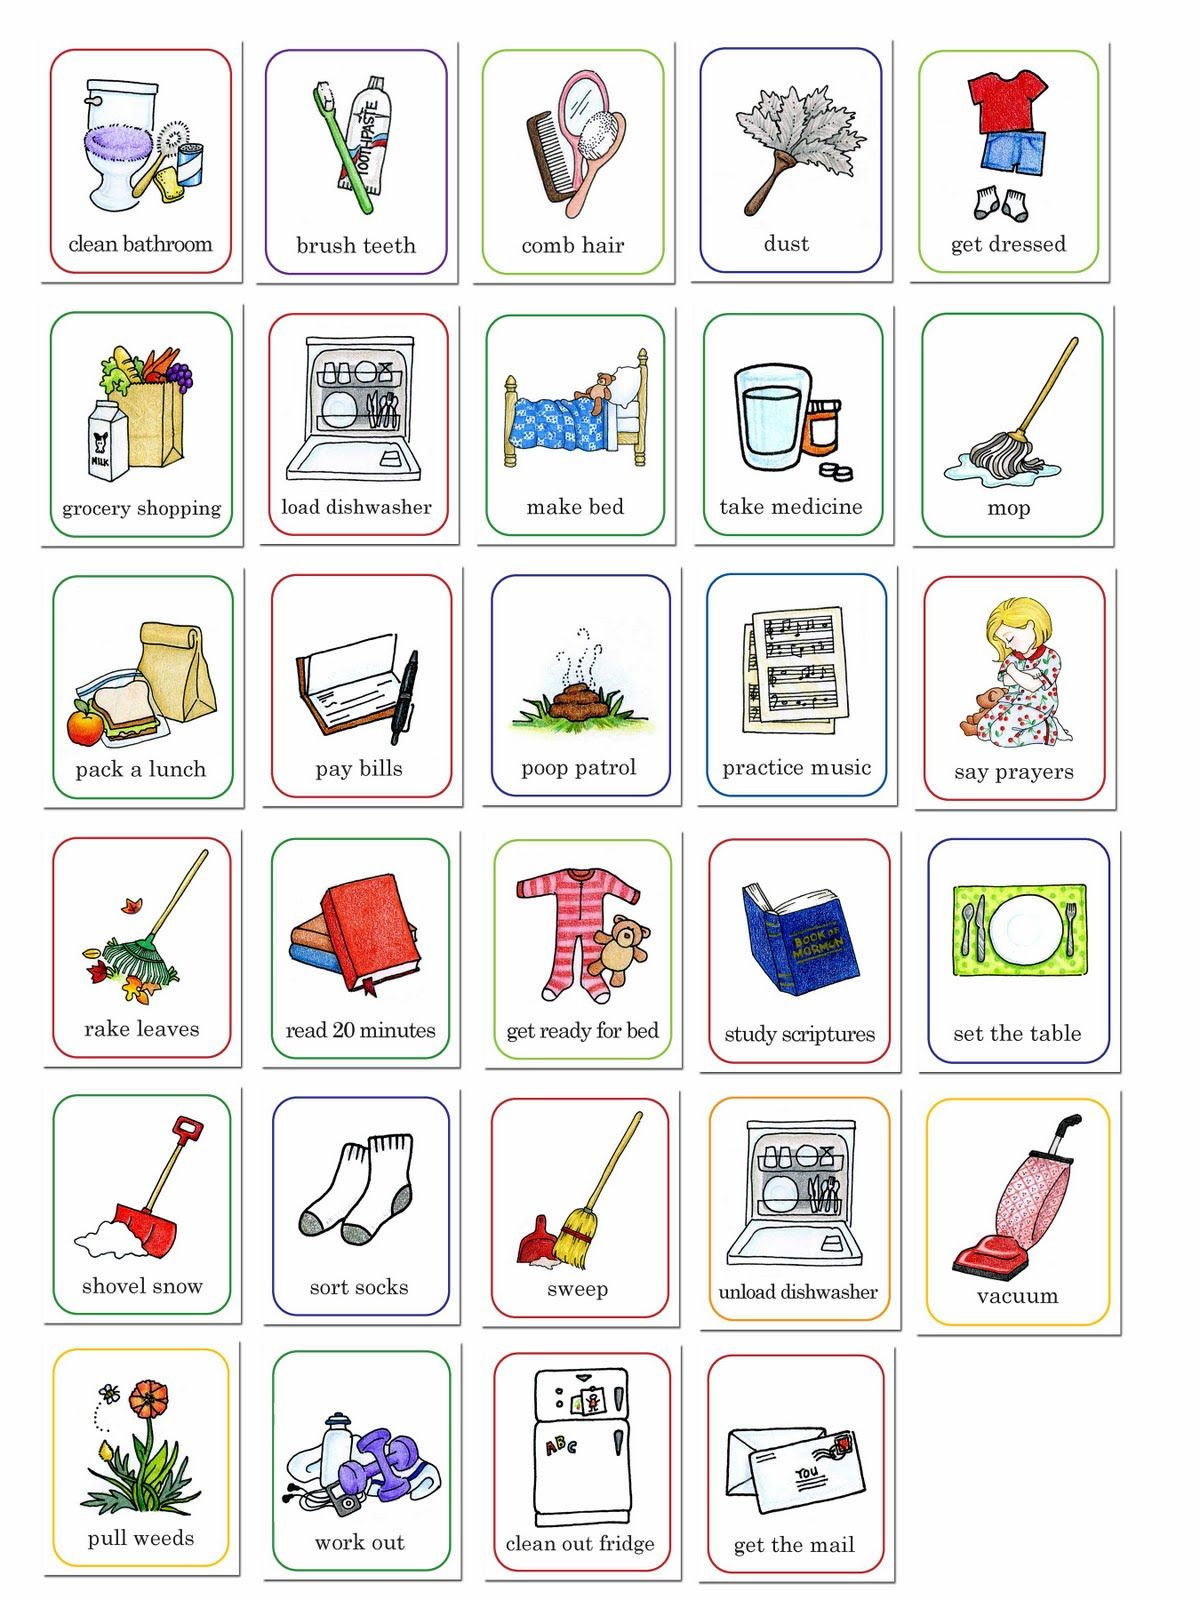 photograph about Printable Preschool Chore Chart referred to as Small children chores Youngsters Chore chart small children, Infant chores